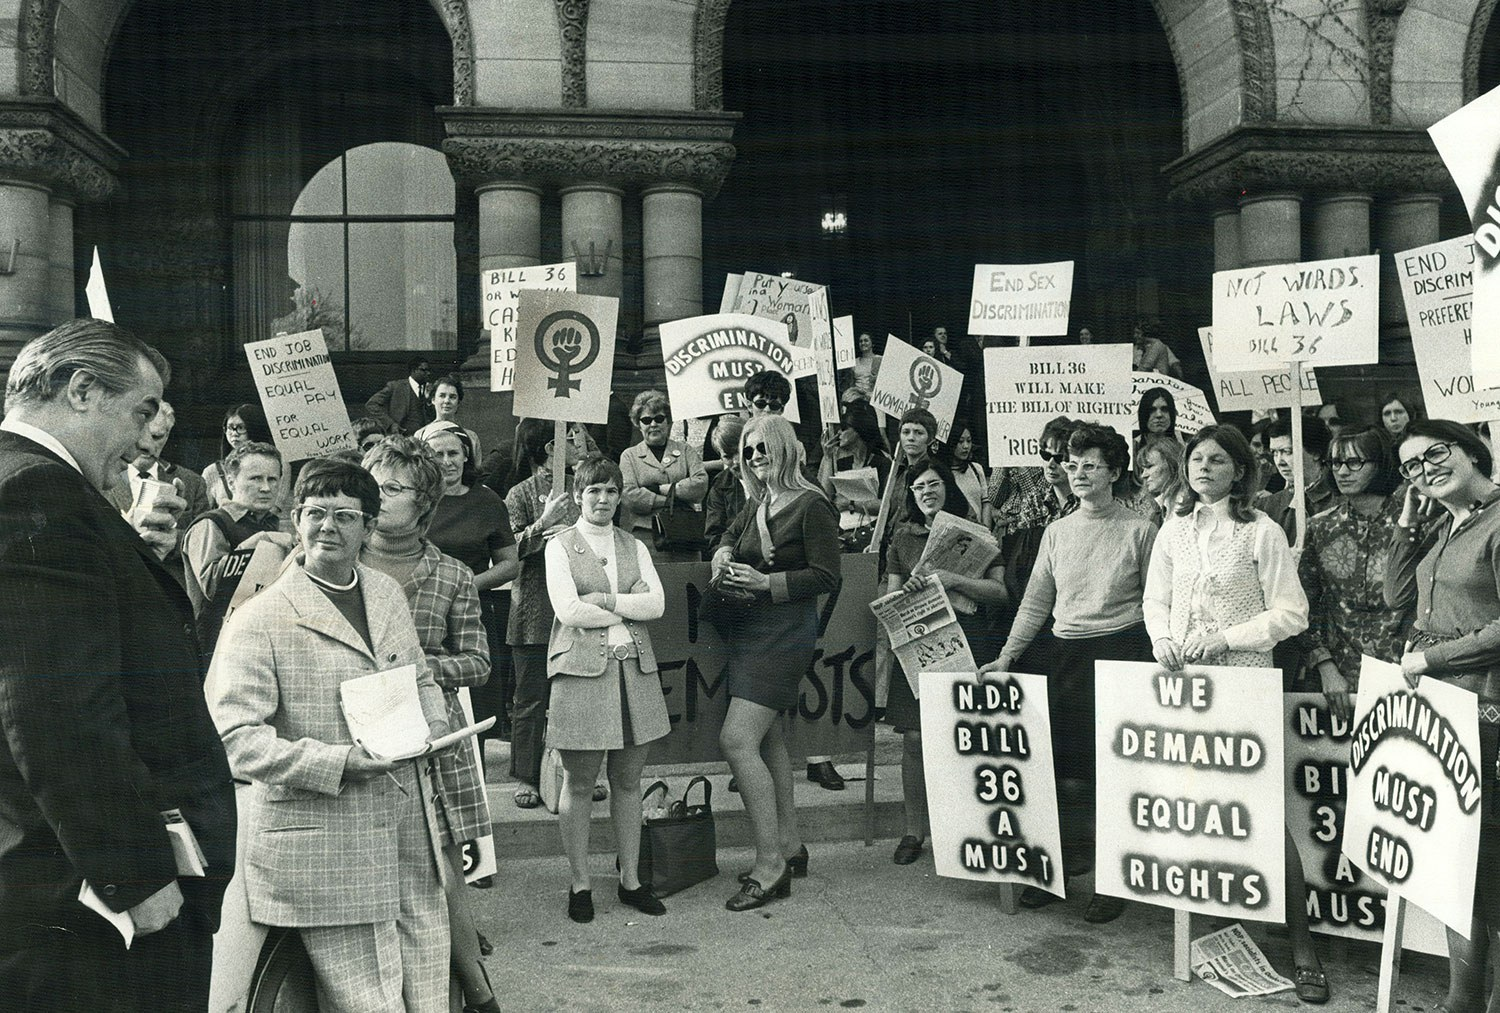 Members of the Voice of Women, Women's Liberation Movement, New Feminists and Young Socialists demonstrated at Queen's Park in April 1970, asking support for a bill to ensure that women get equal pay for equal work. (Photo: Dick Darrell/Toronto Star via Getty Images)